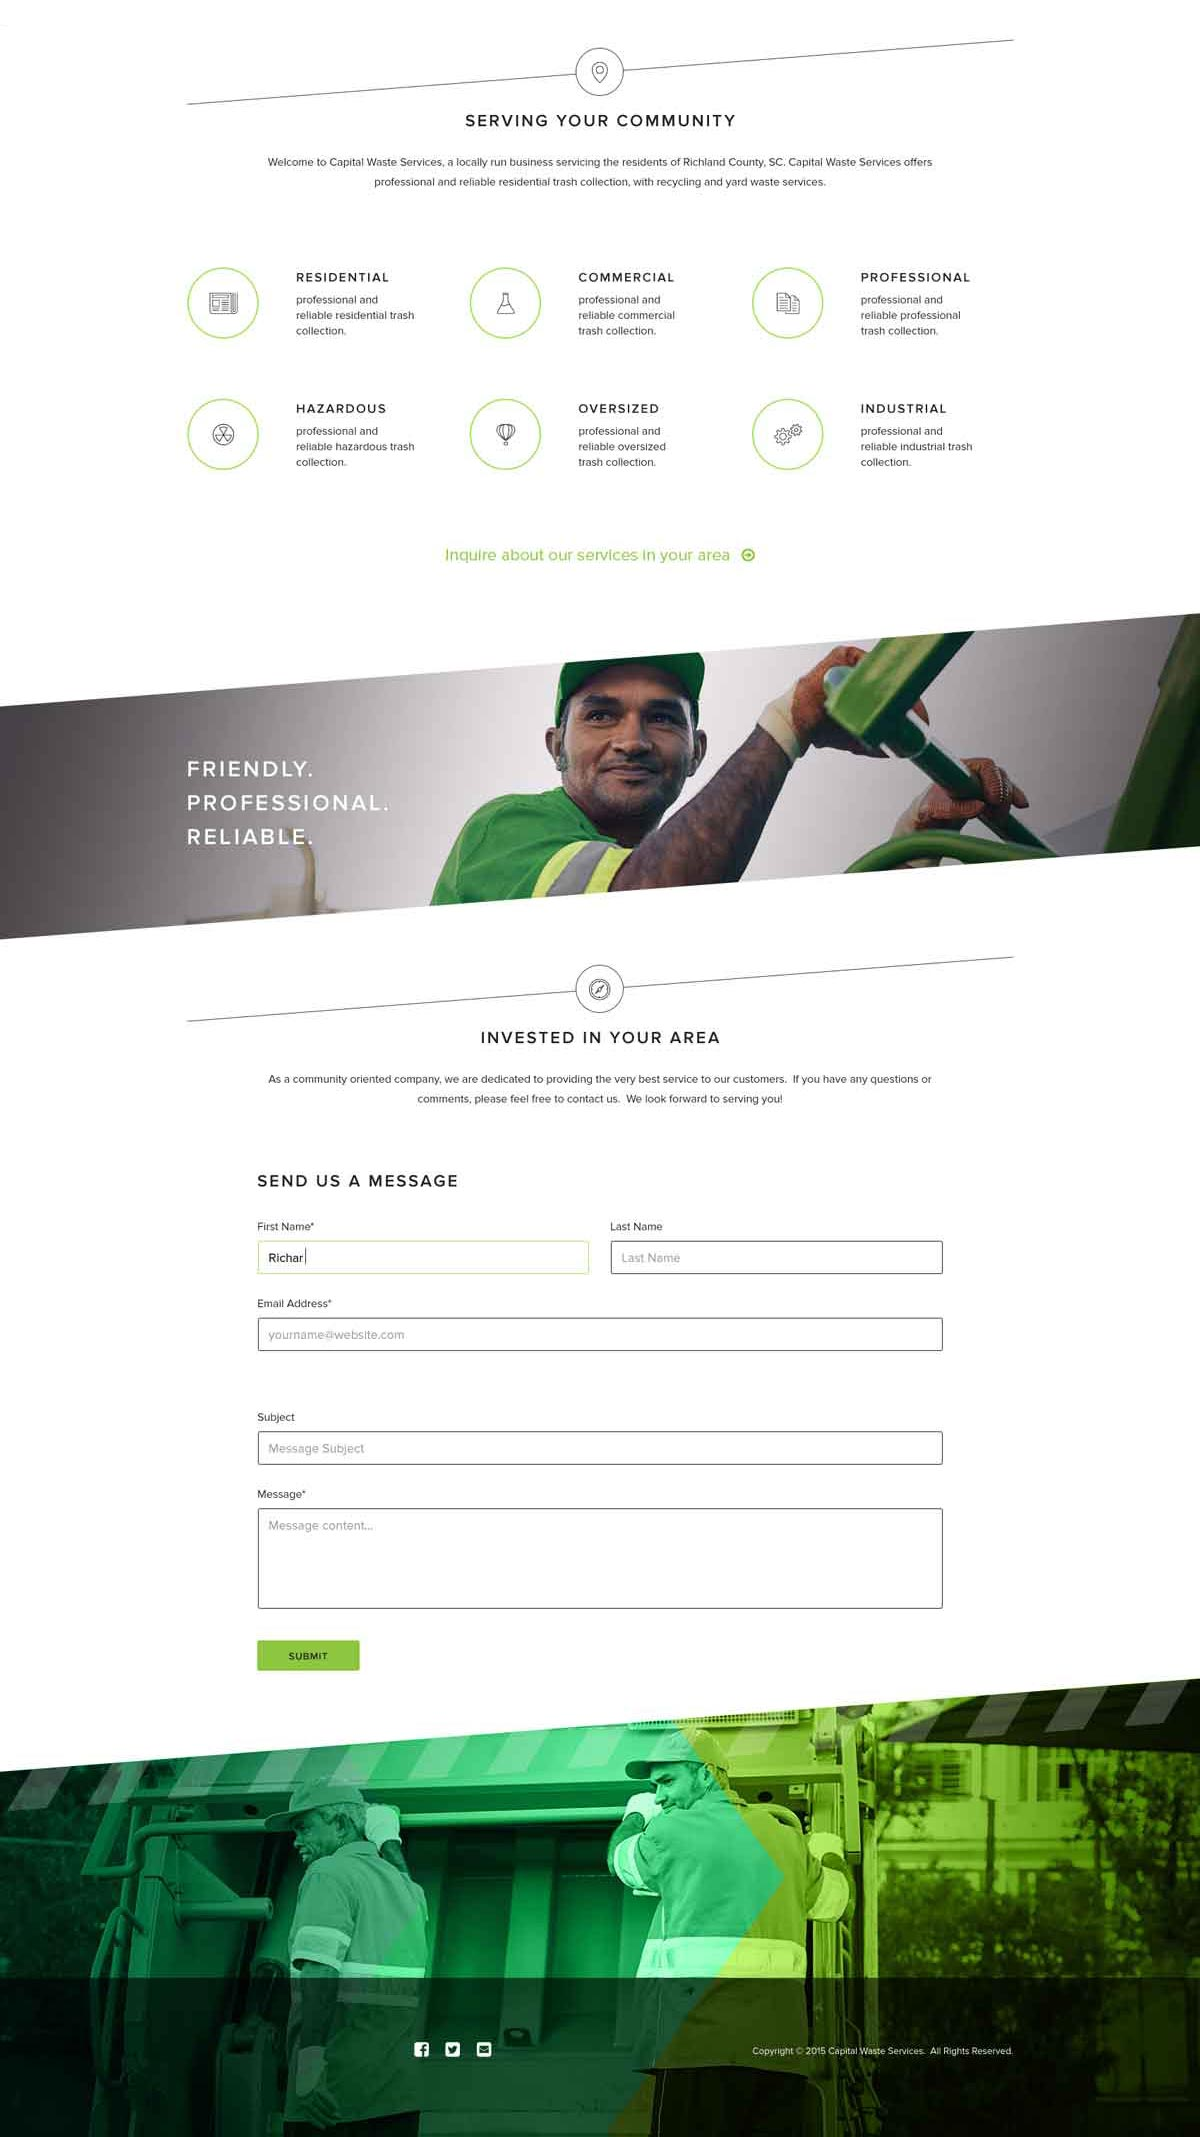 Capital Waste Services home page design